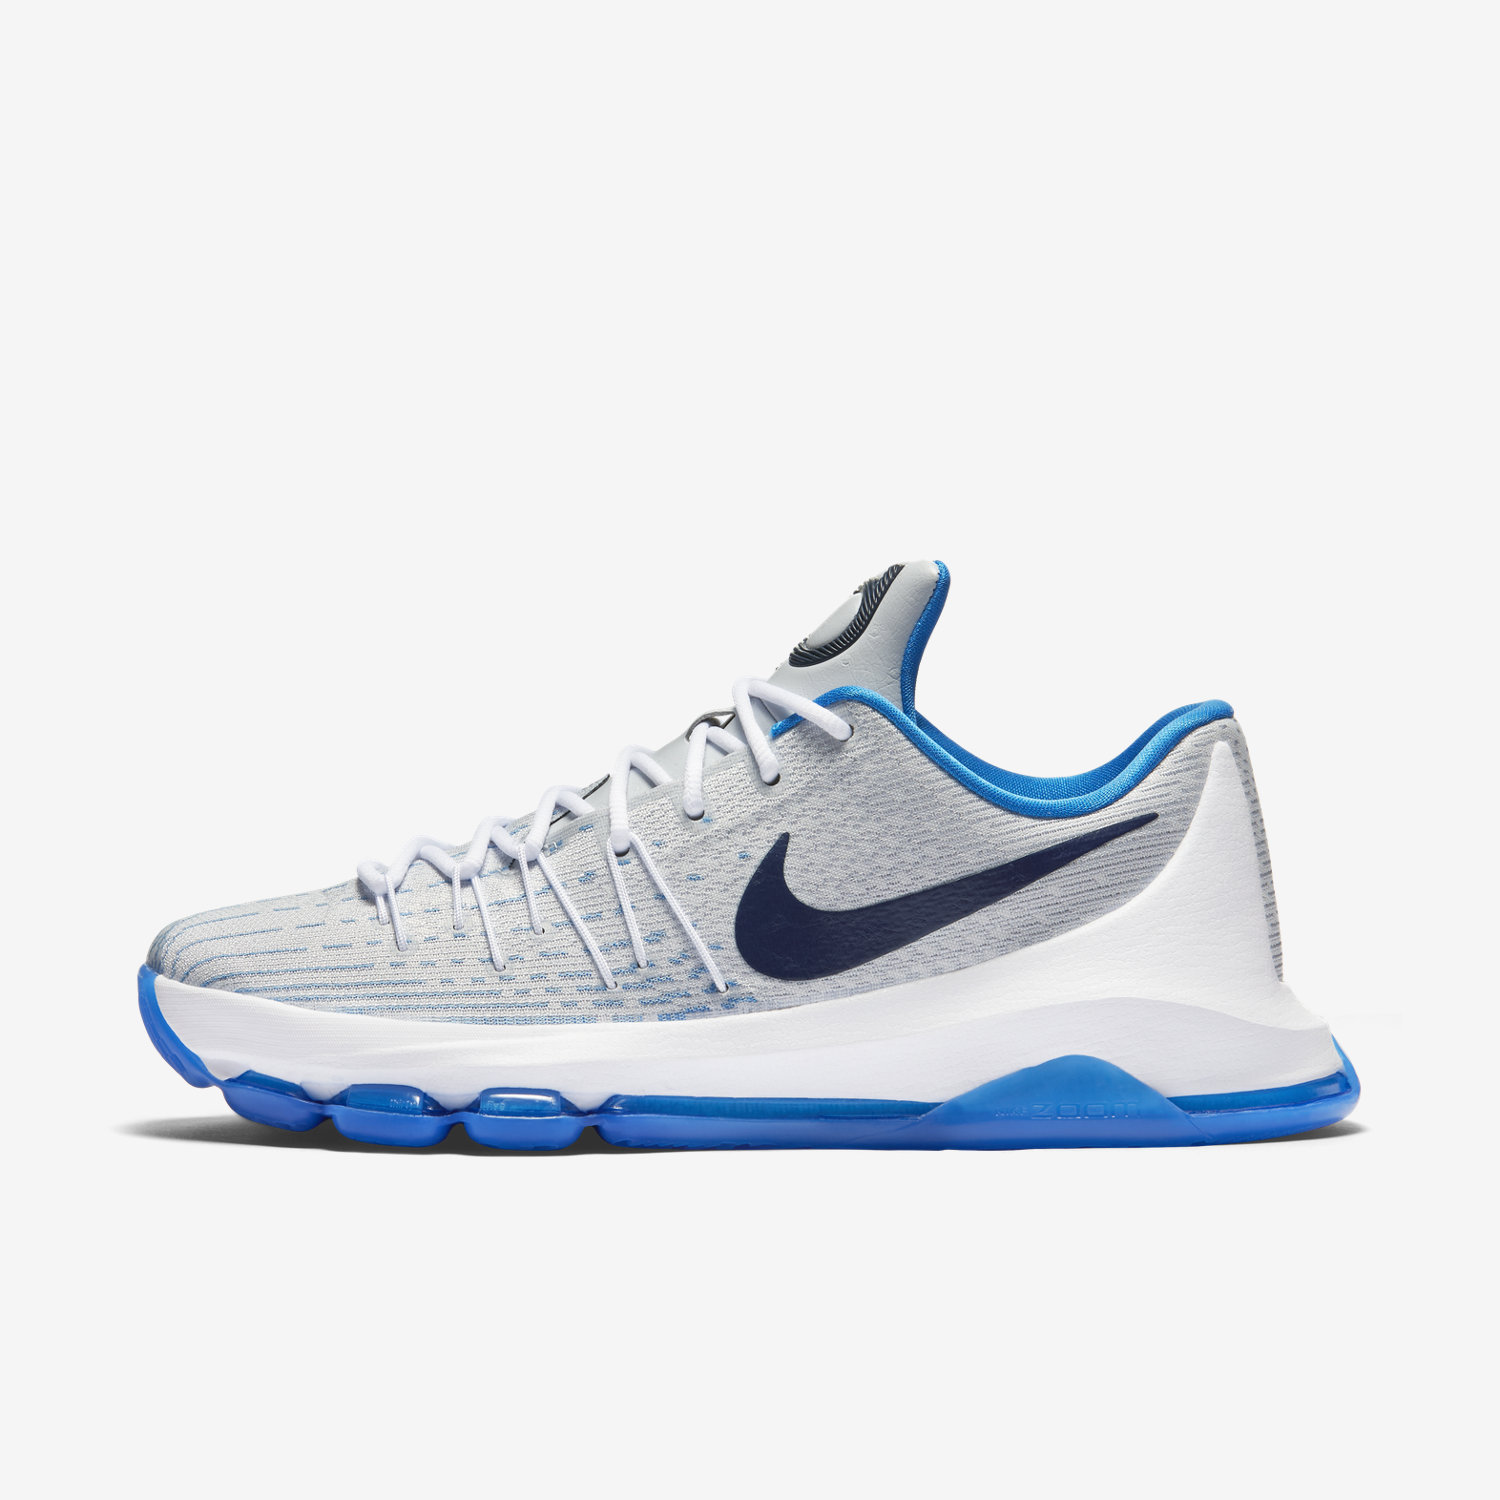 Nike Basketball Shoes Navy And Gray